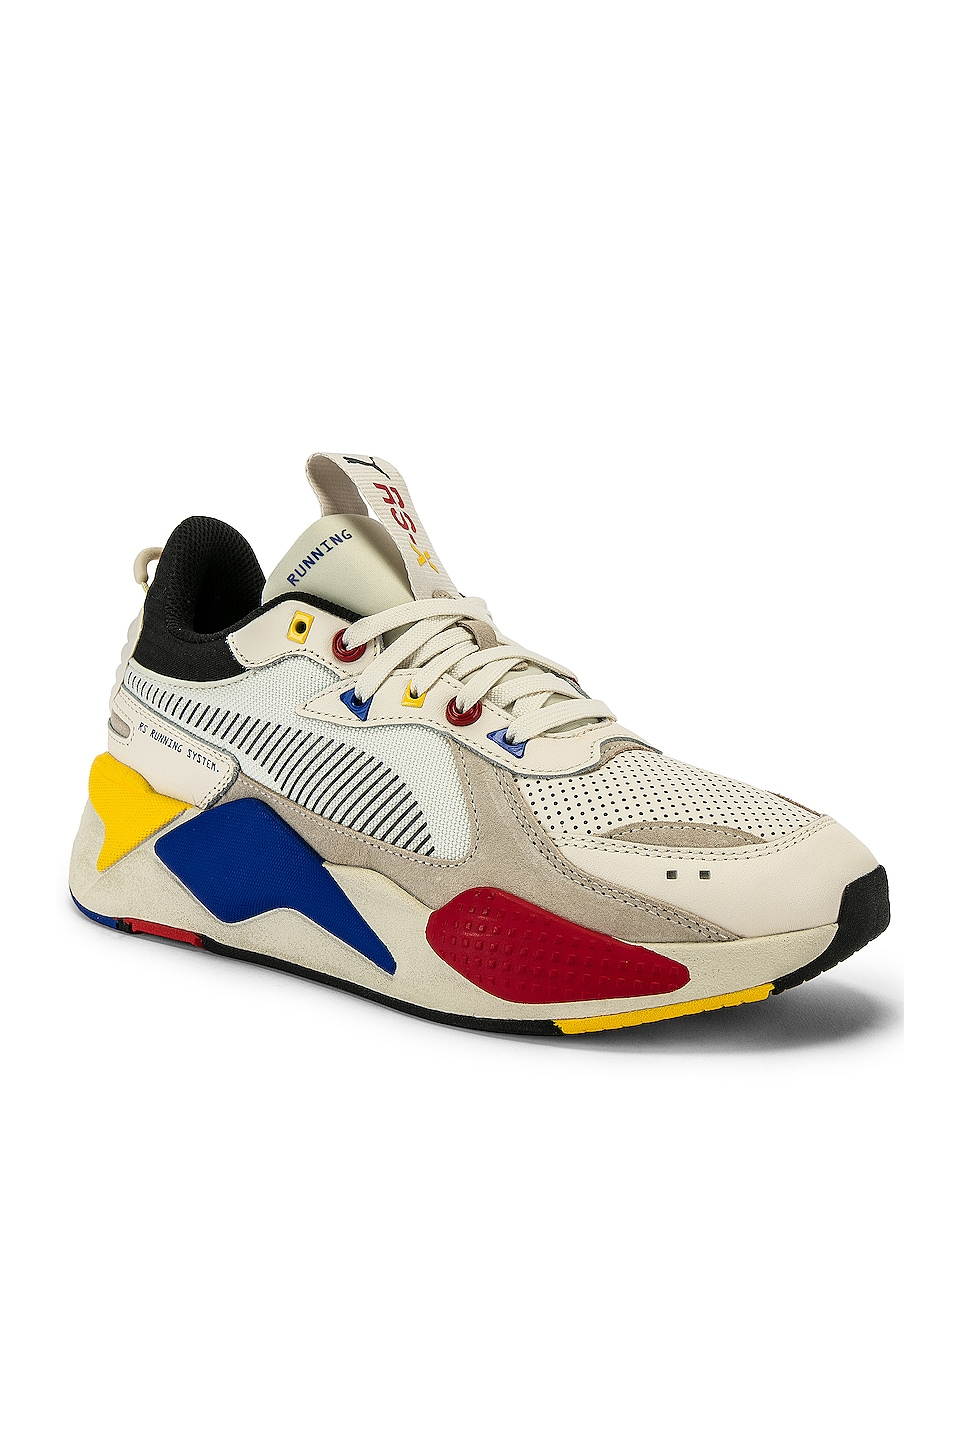 Puma Select RS-X Colour Theory in Multi